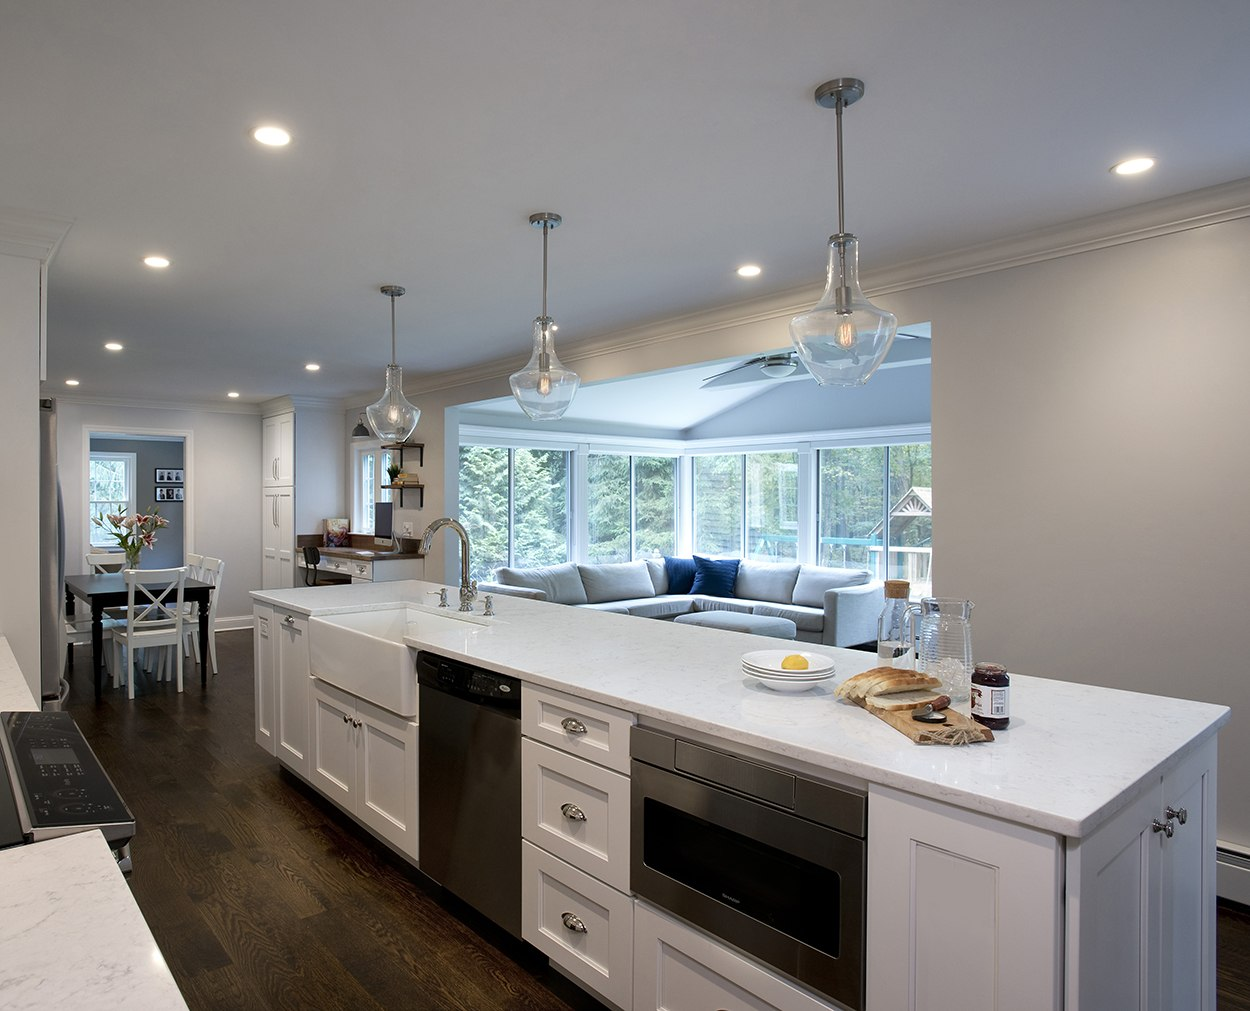 Looking over the island in this kitchen remodel in Fairfield County